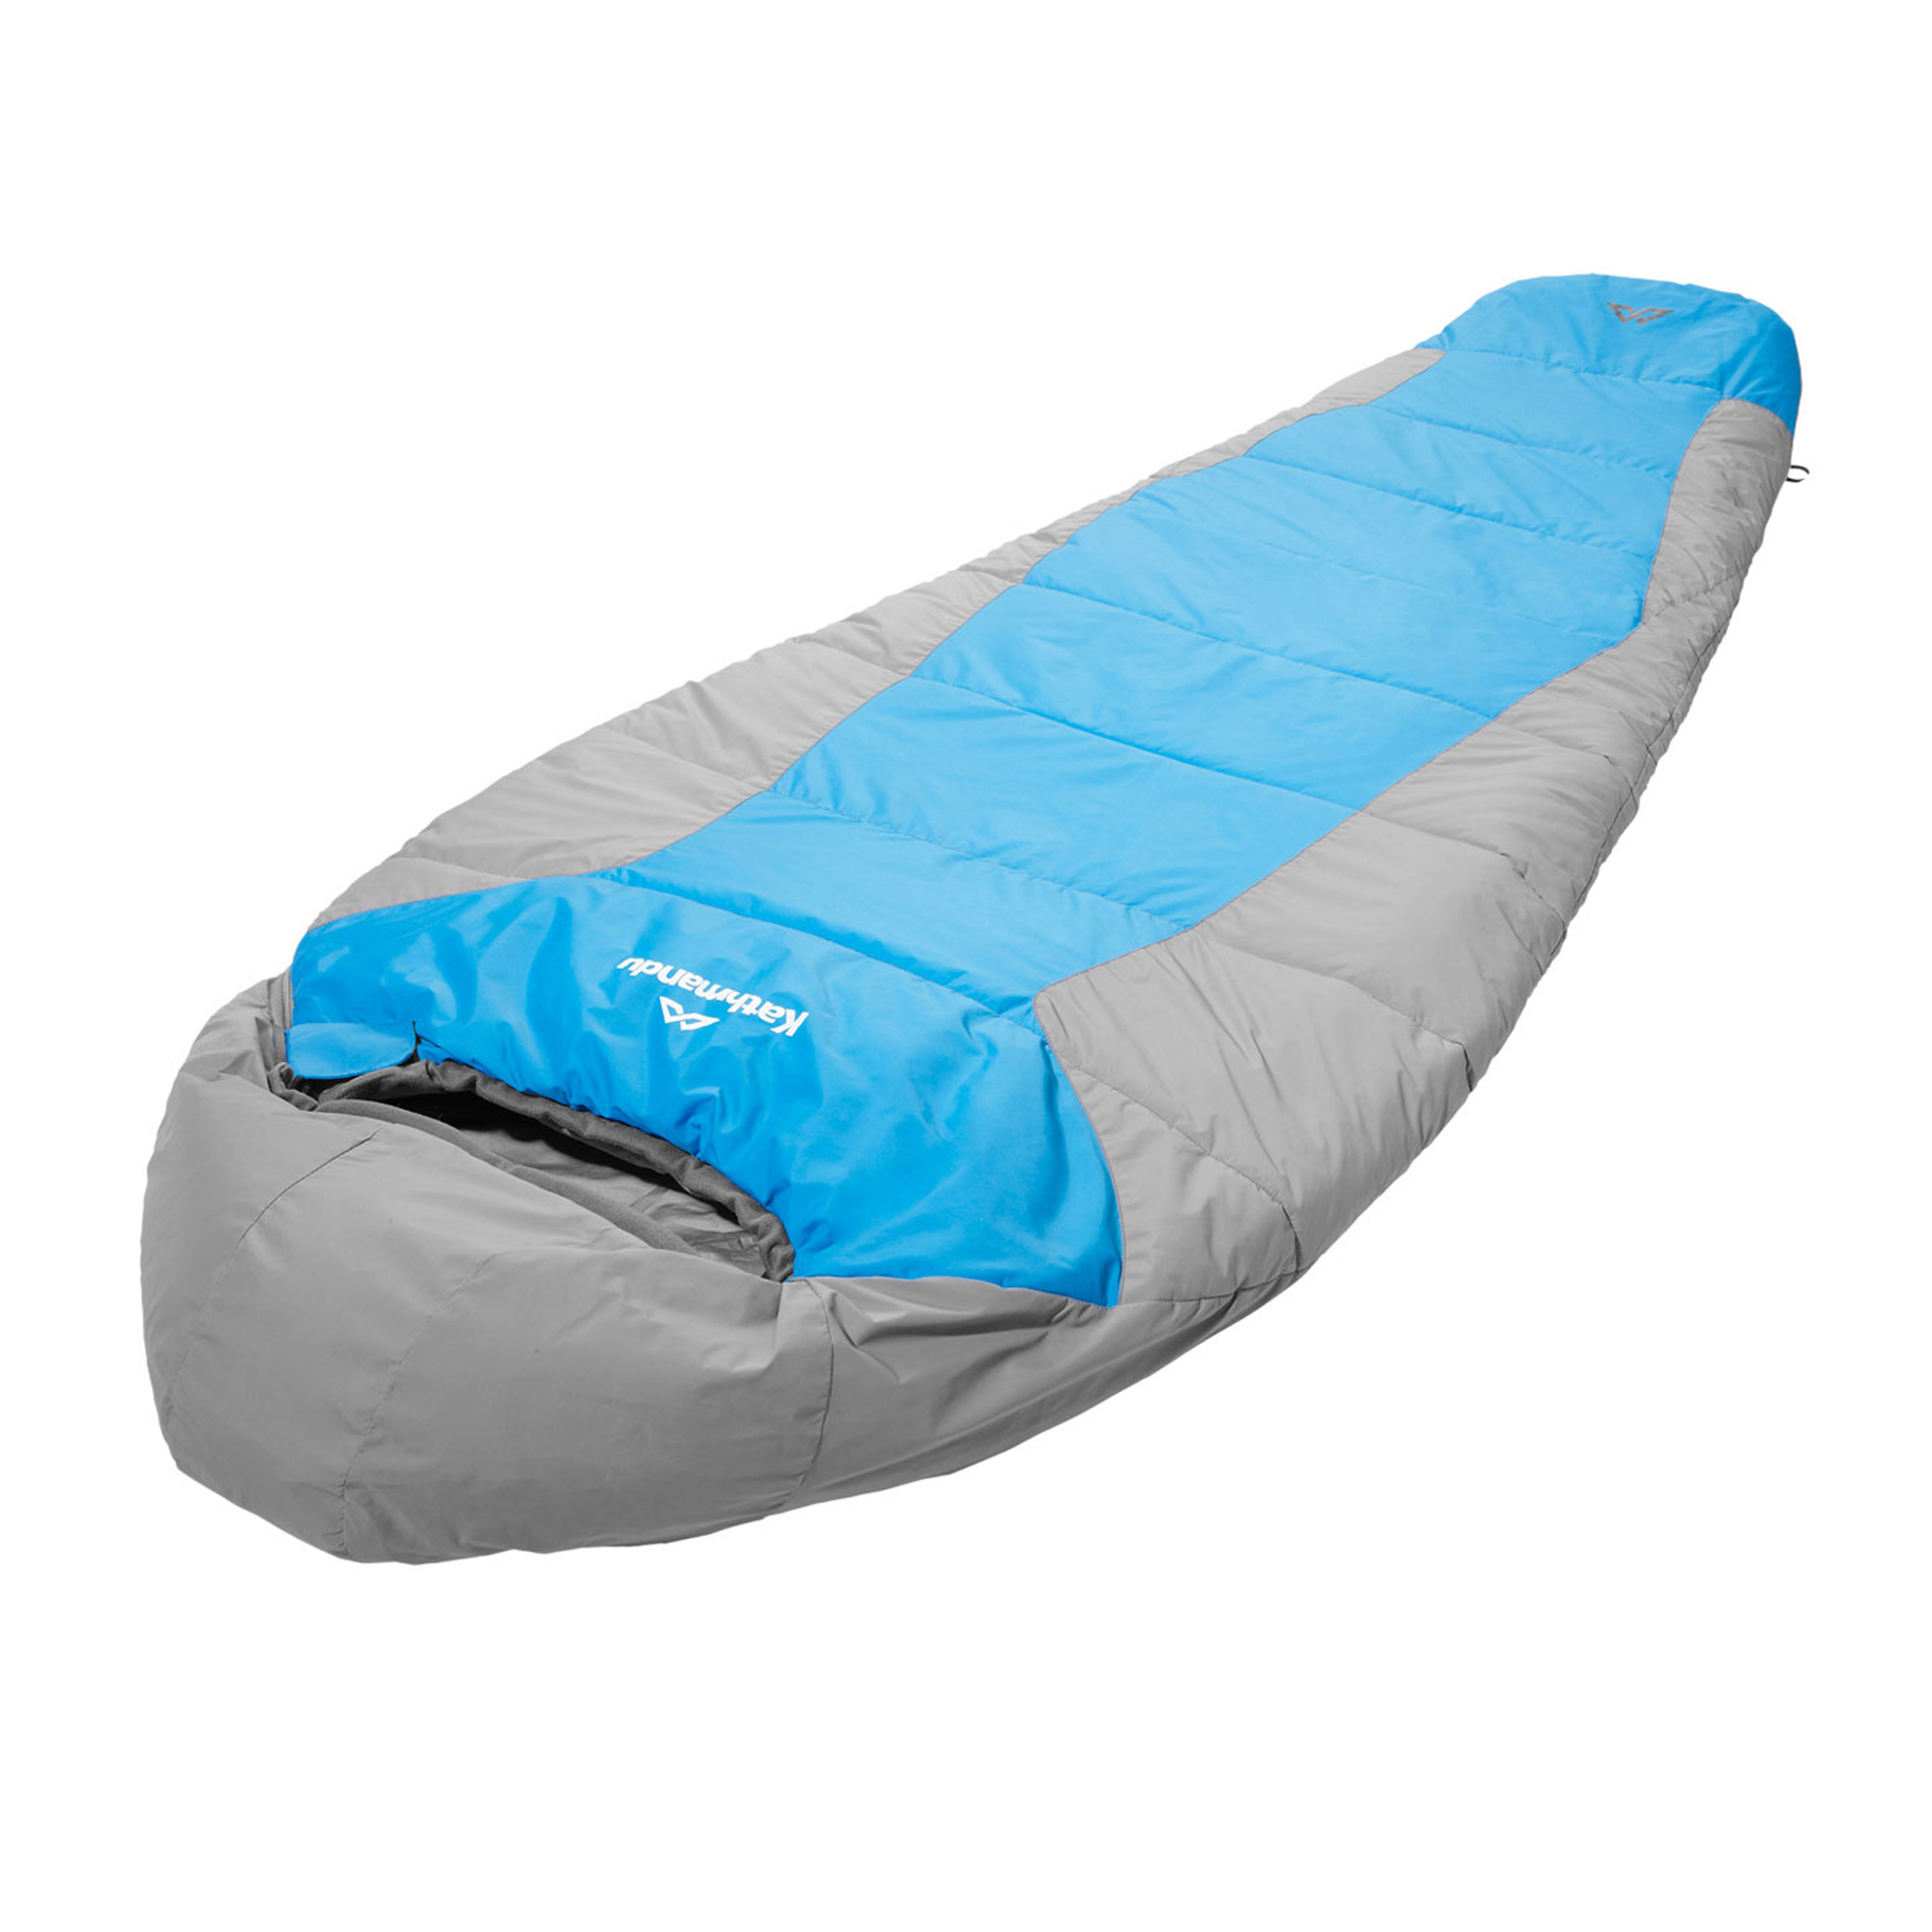 Odyssey Mummy Insulated Sleeping Bag